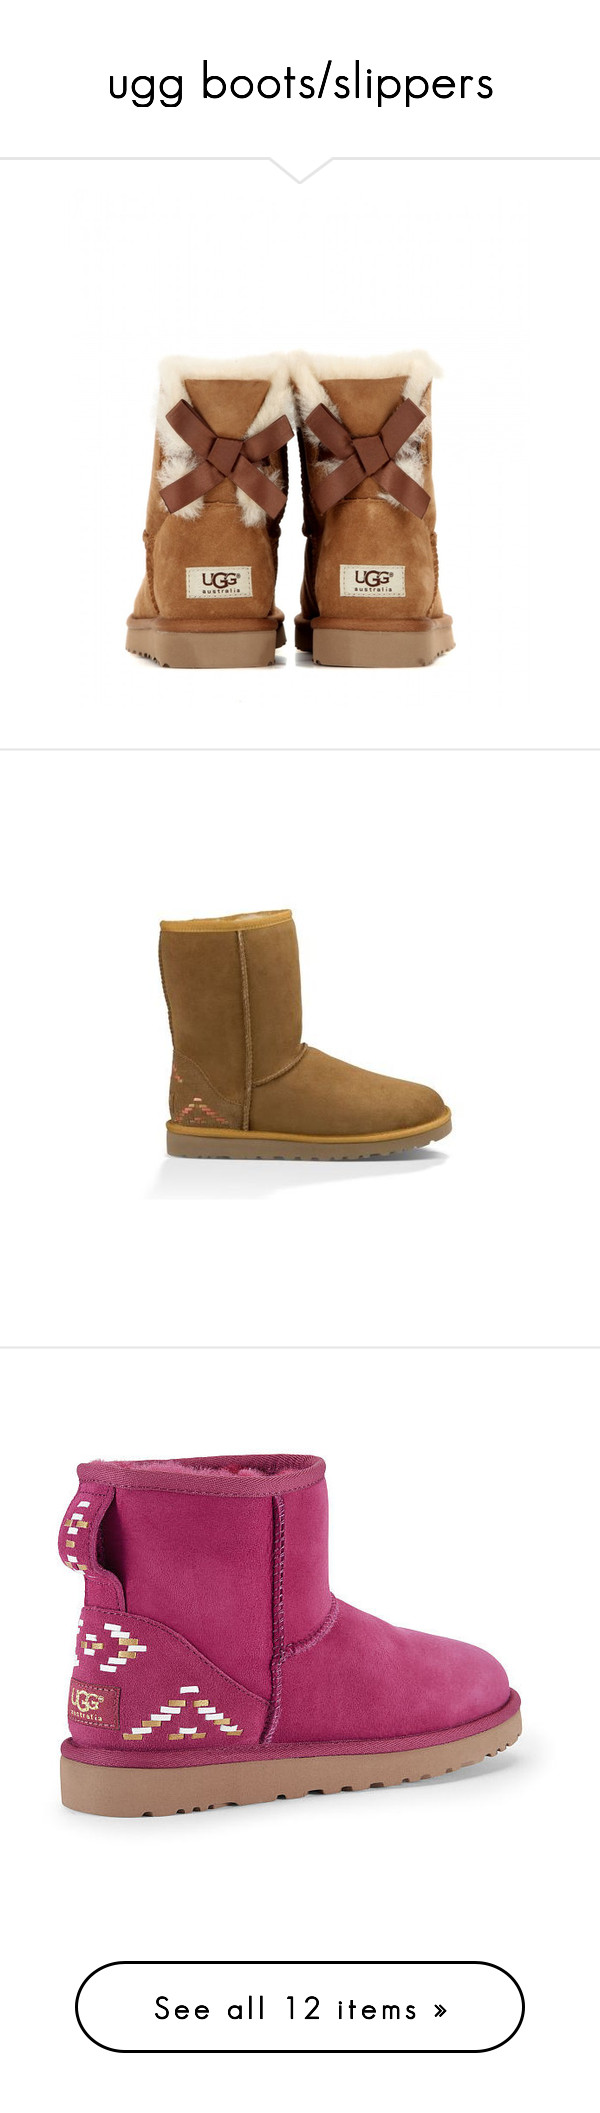 5bea9fc3d41 ugg boots/slippers